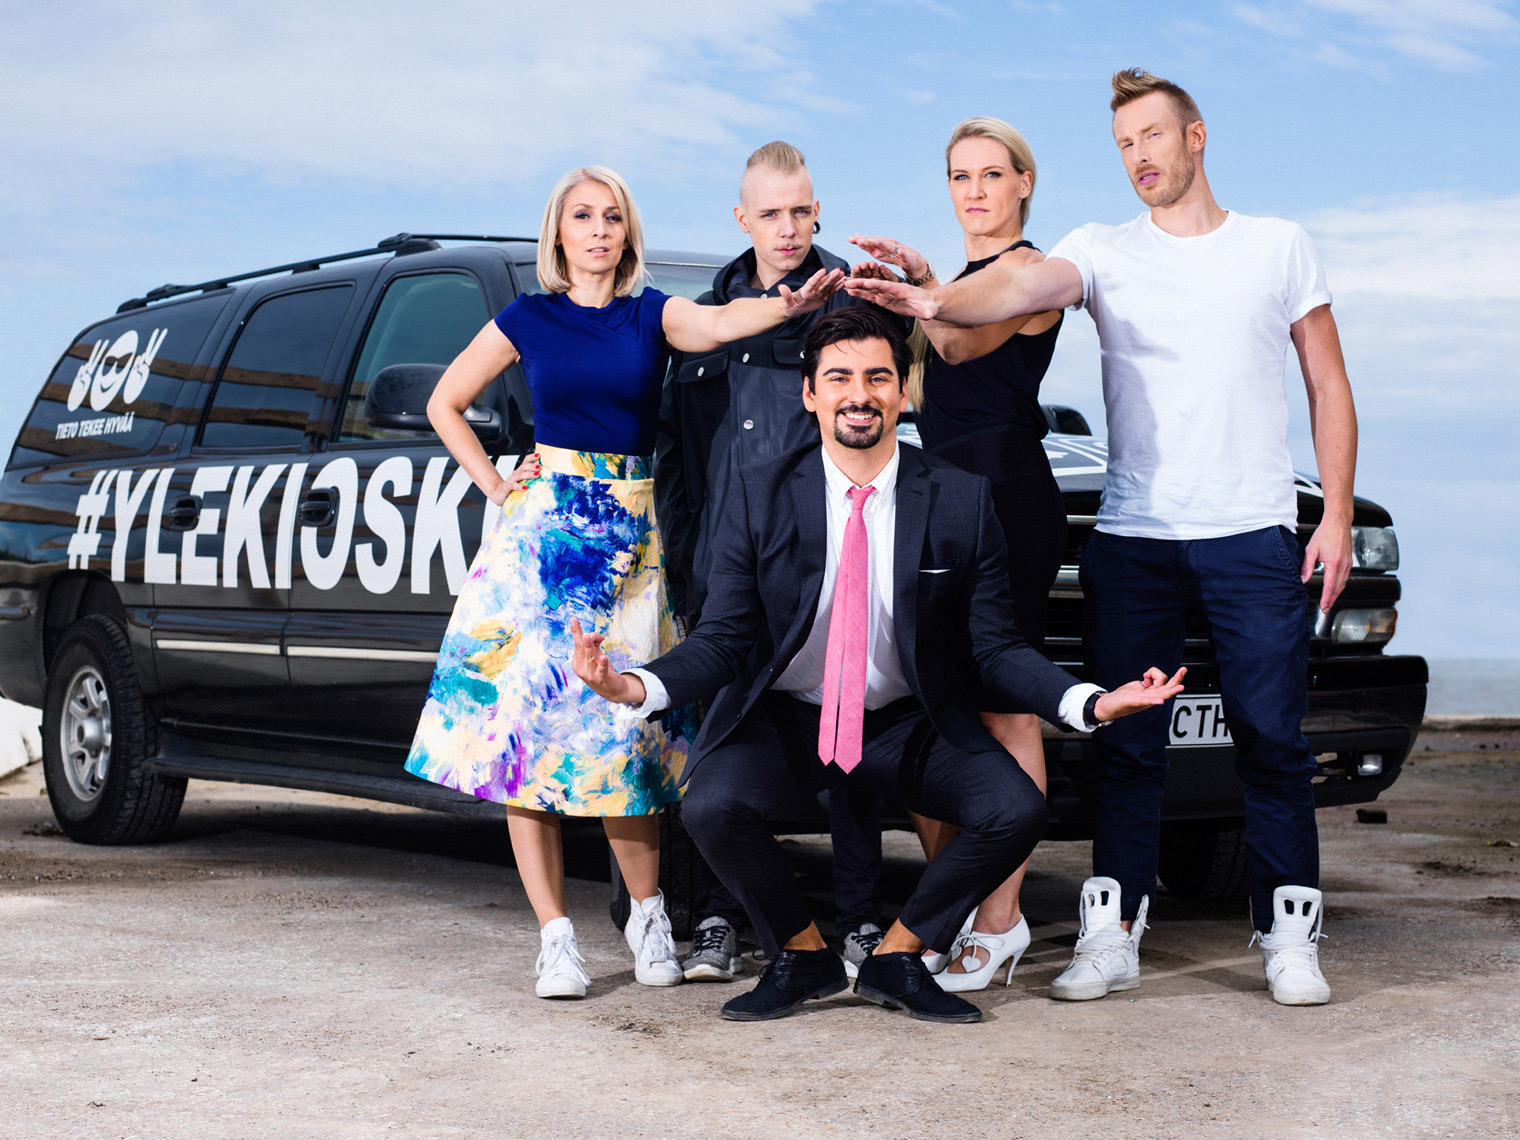 Promo Pictures for YLE Kioski – // Photographer: Aki-Pekka Sinikoski